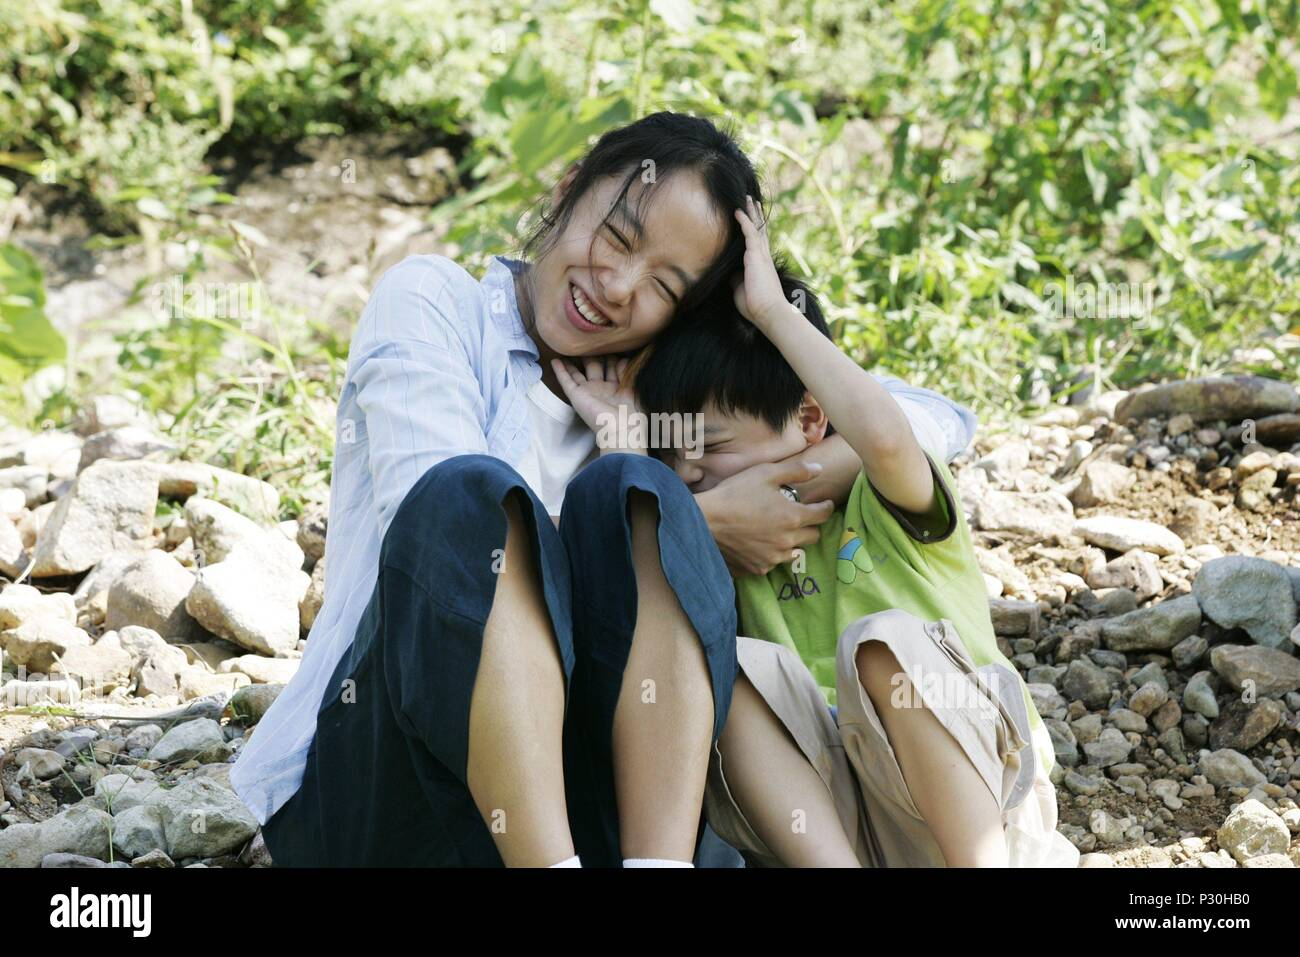 Do Yeon Stock Photos & Do Yeon Stock Images - Page 2 - Alamy